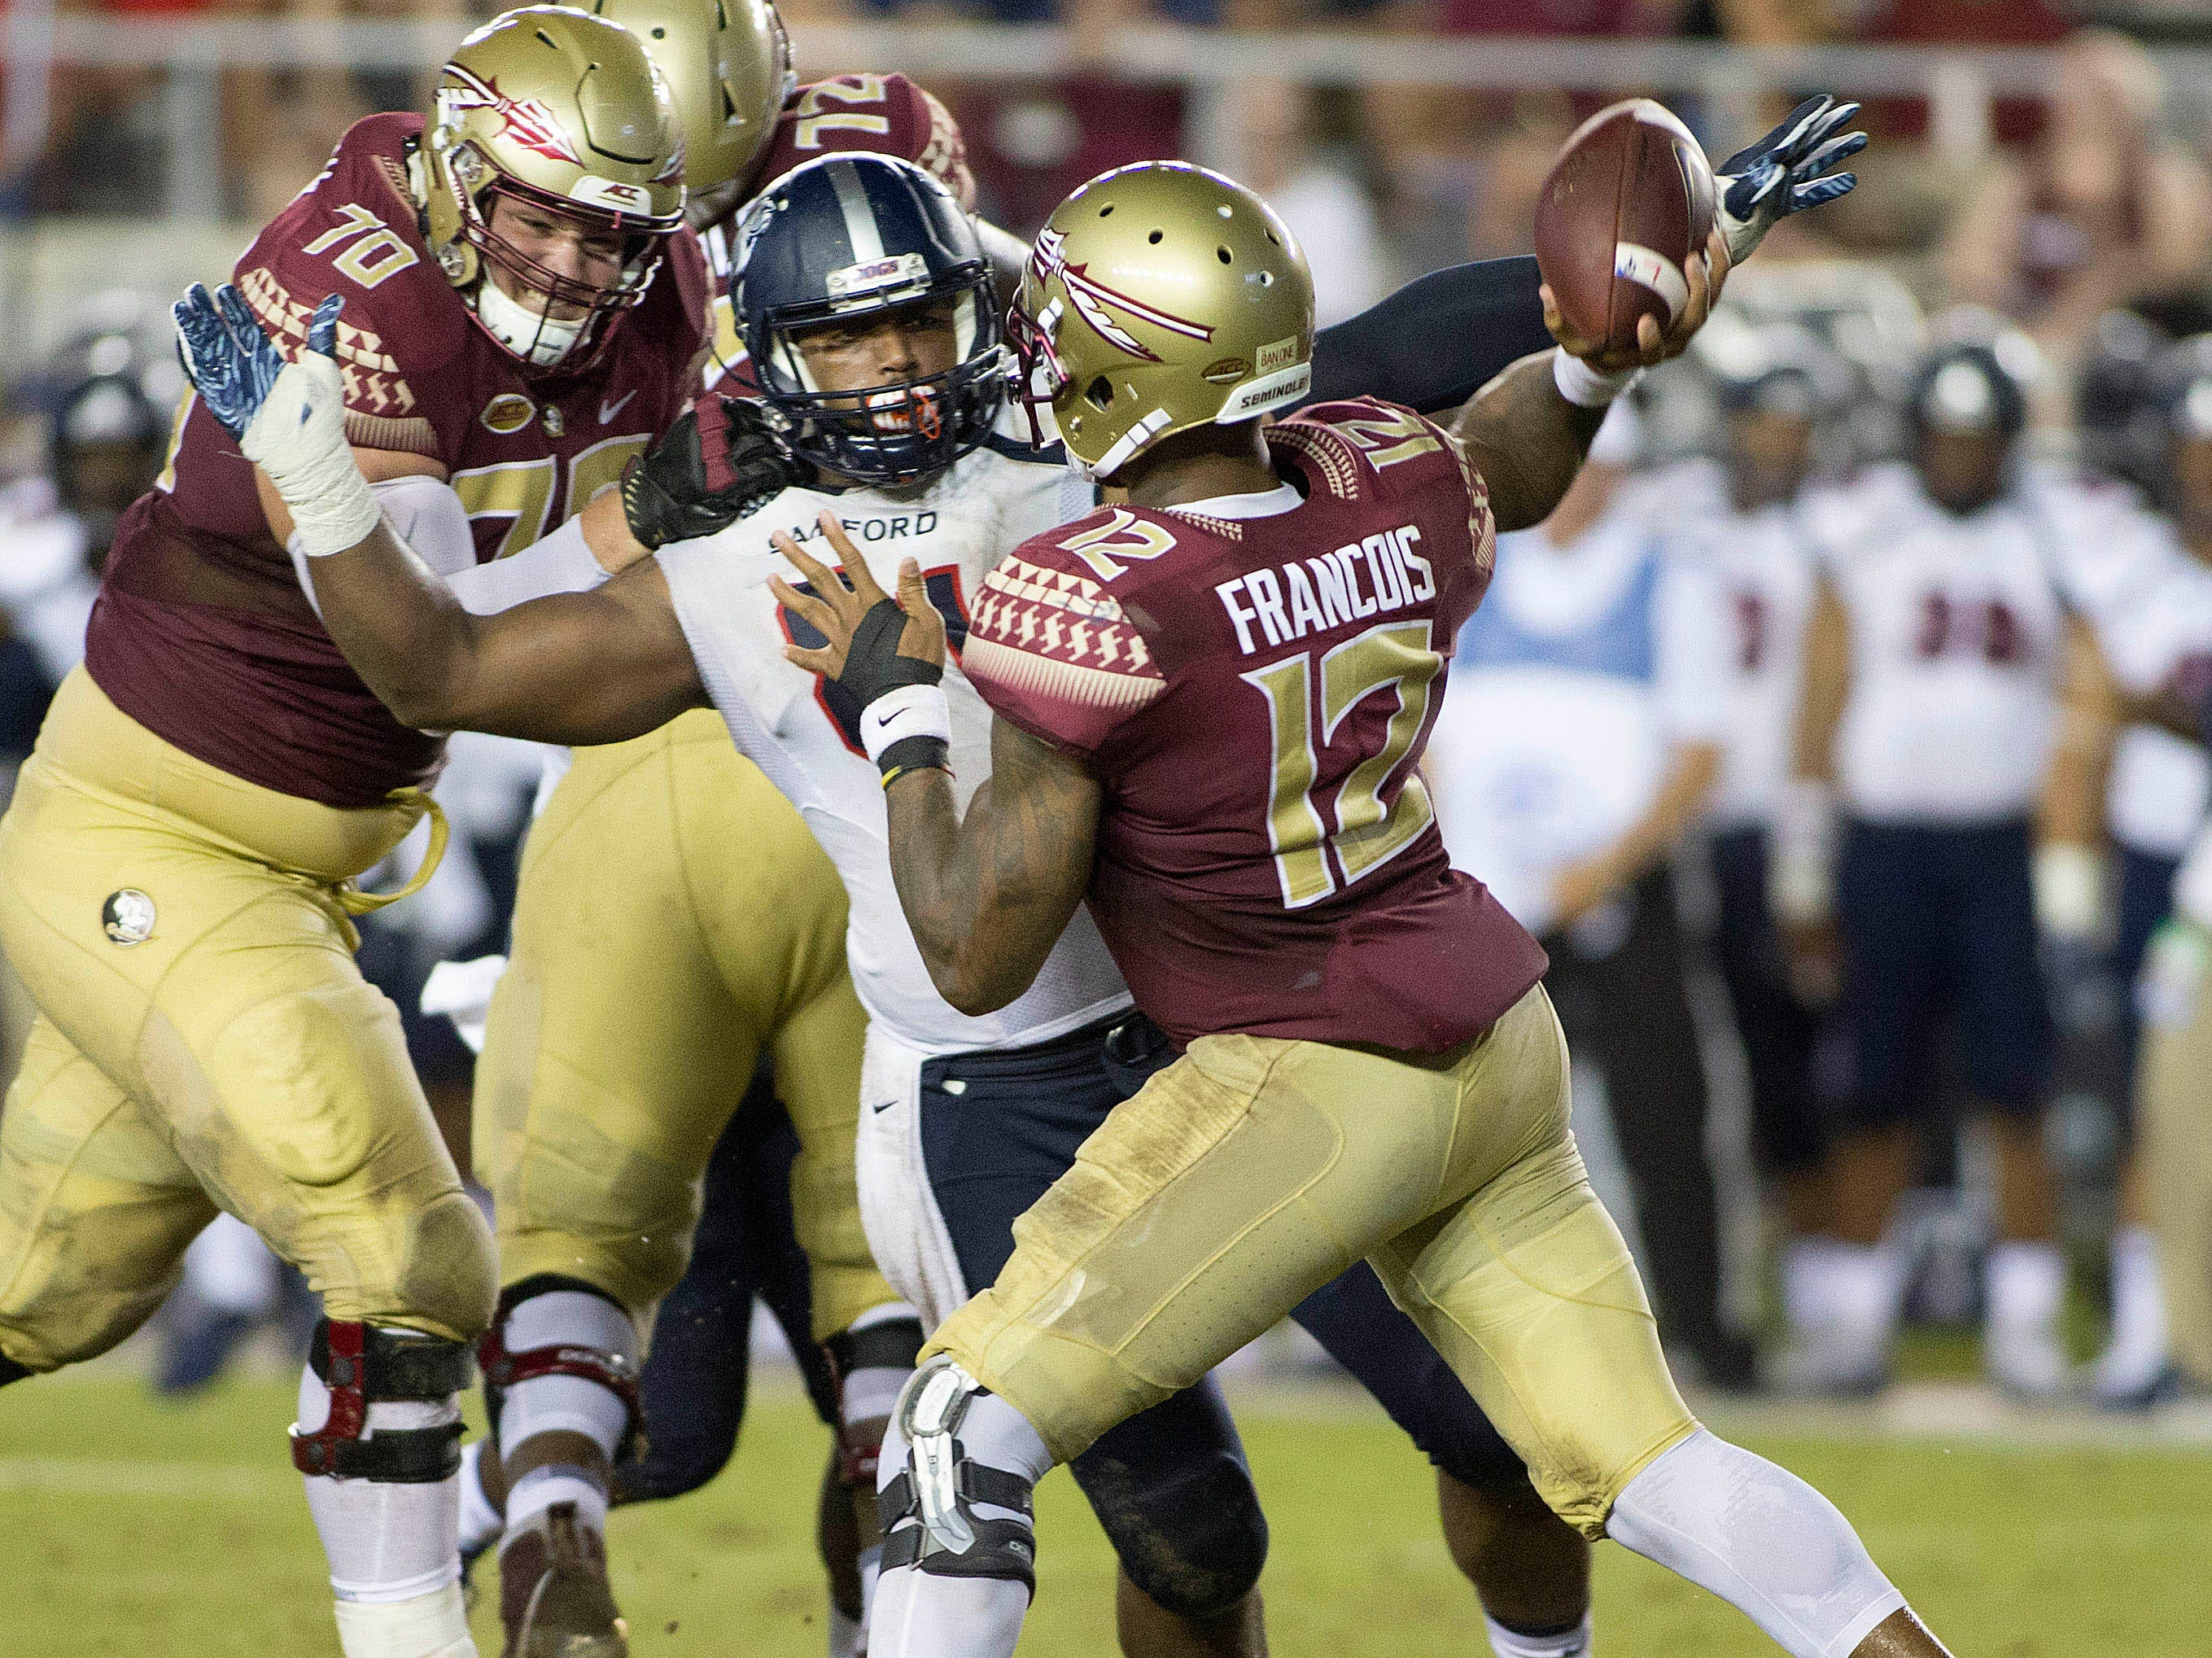 Florida State Seminoles quarterback Deondre Francois (12) throws during the second half of play as the Florida State Seminoles host the Samford Bulldogs at Doak Campbell Stadium. Florida State won 36-26.